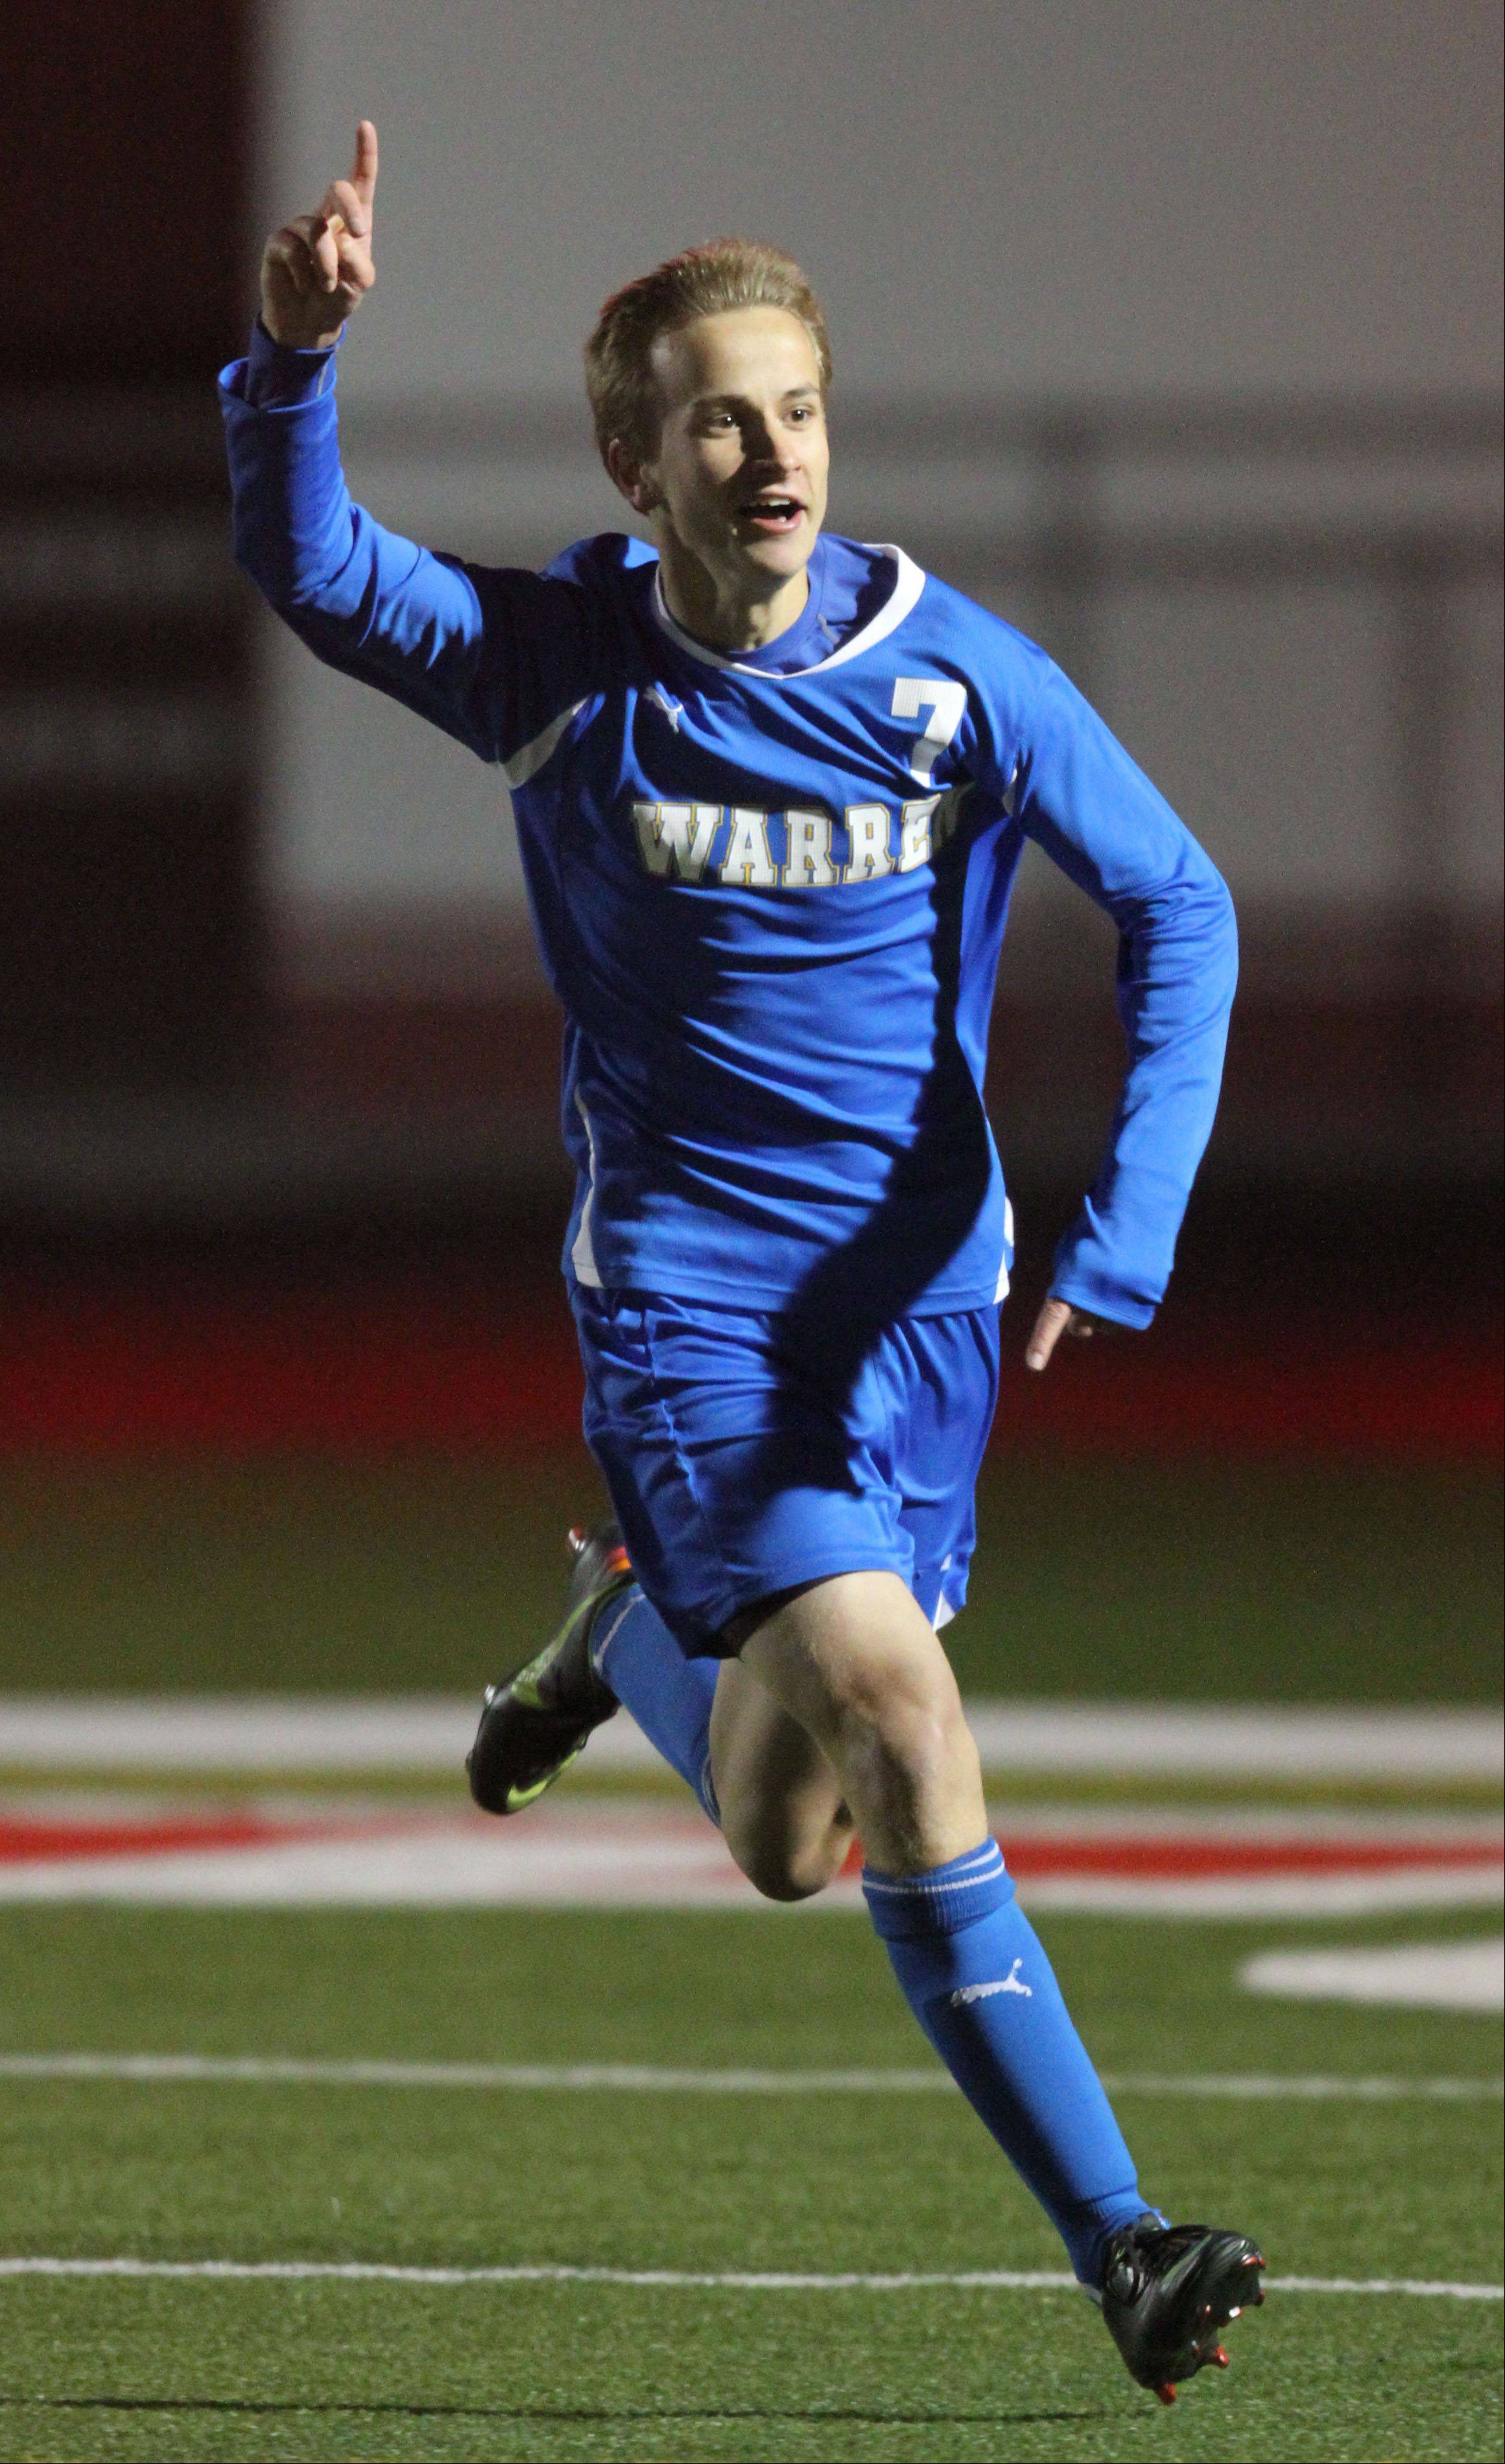 Warren's Nick Wegrzynowicz celebrates after a goal in the first half during super sectional soccer action Tuesday night at Barrington High School.